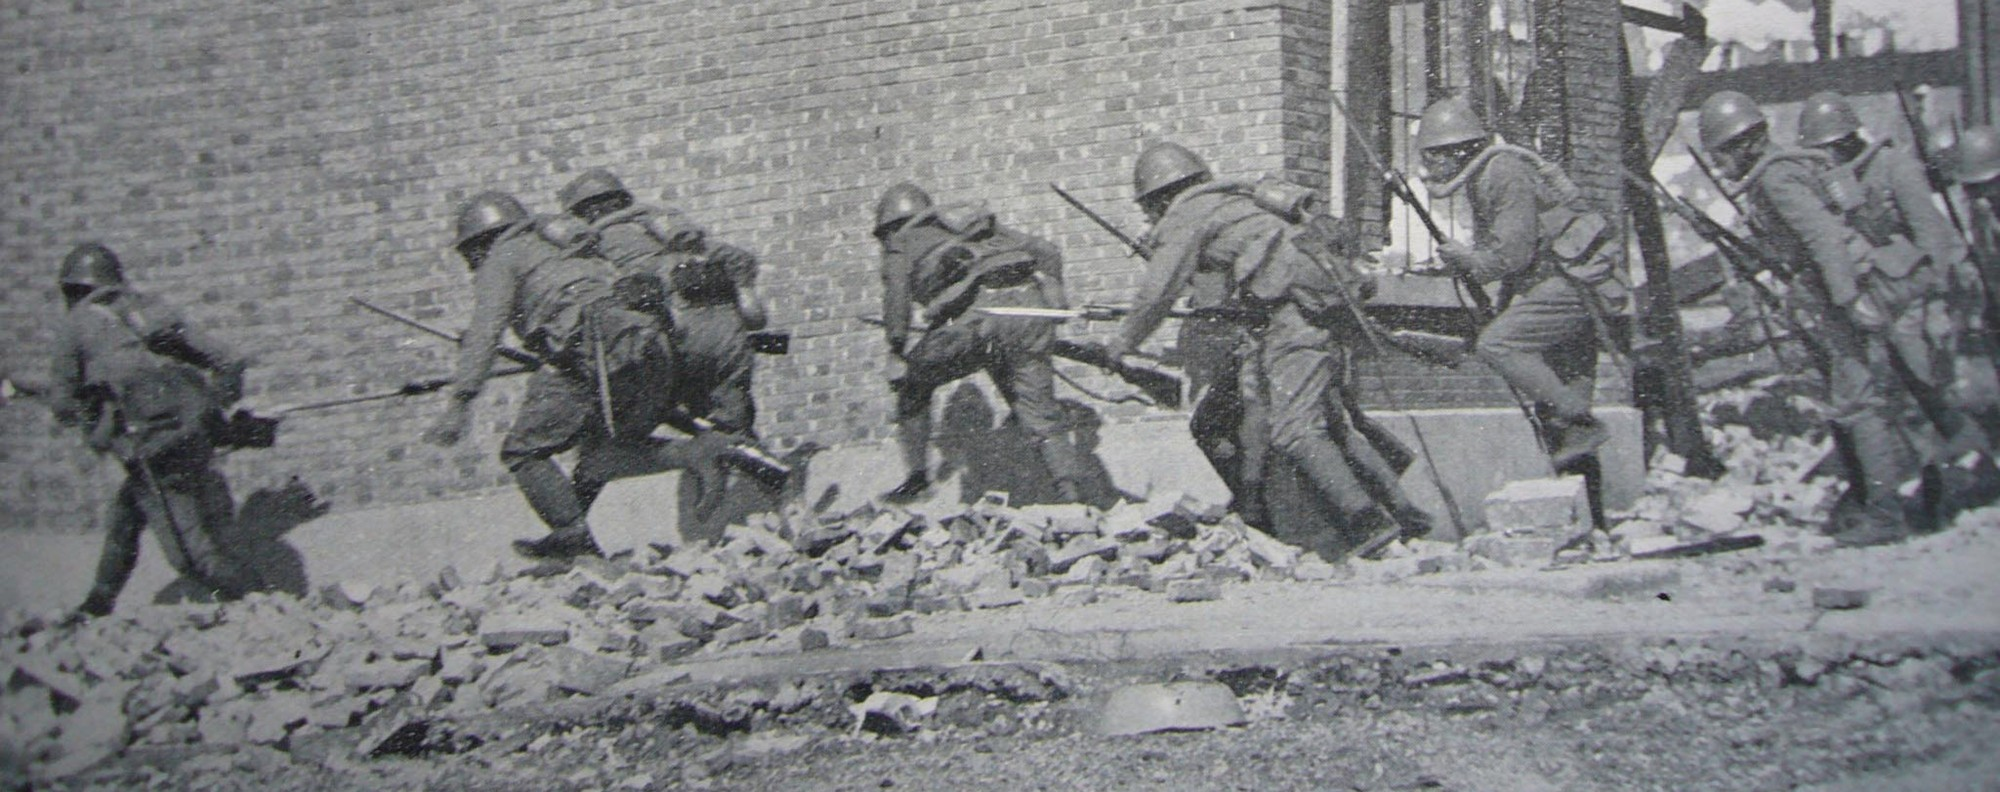 Japanese soldiers attack Wanping town in 1937. Handout photo